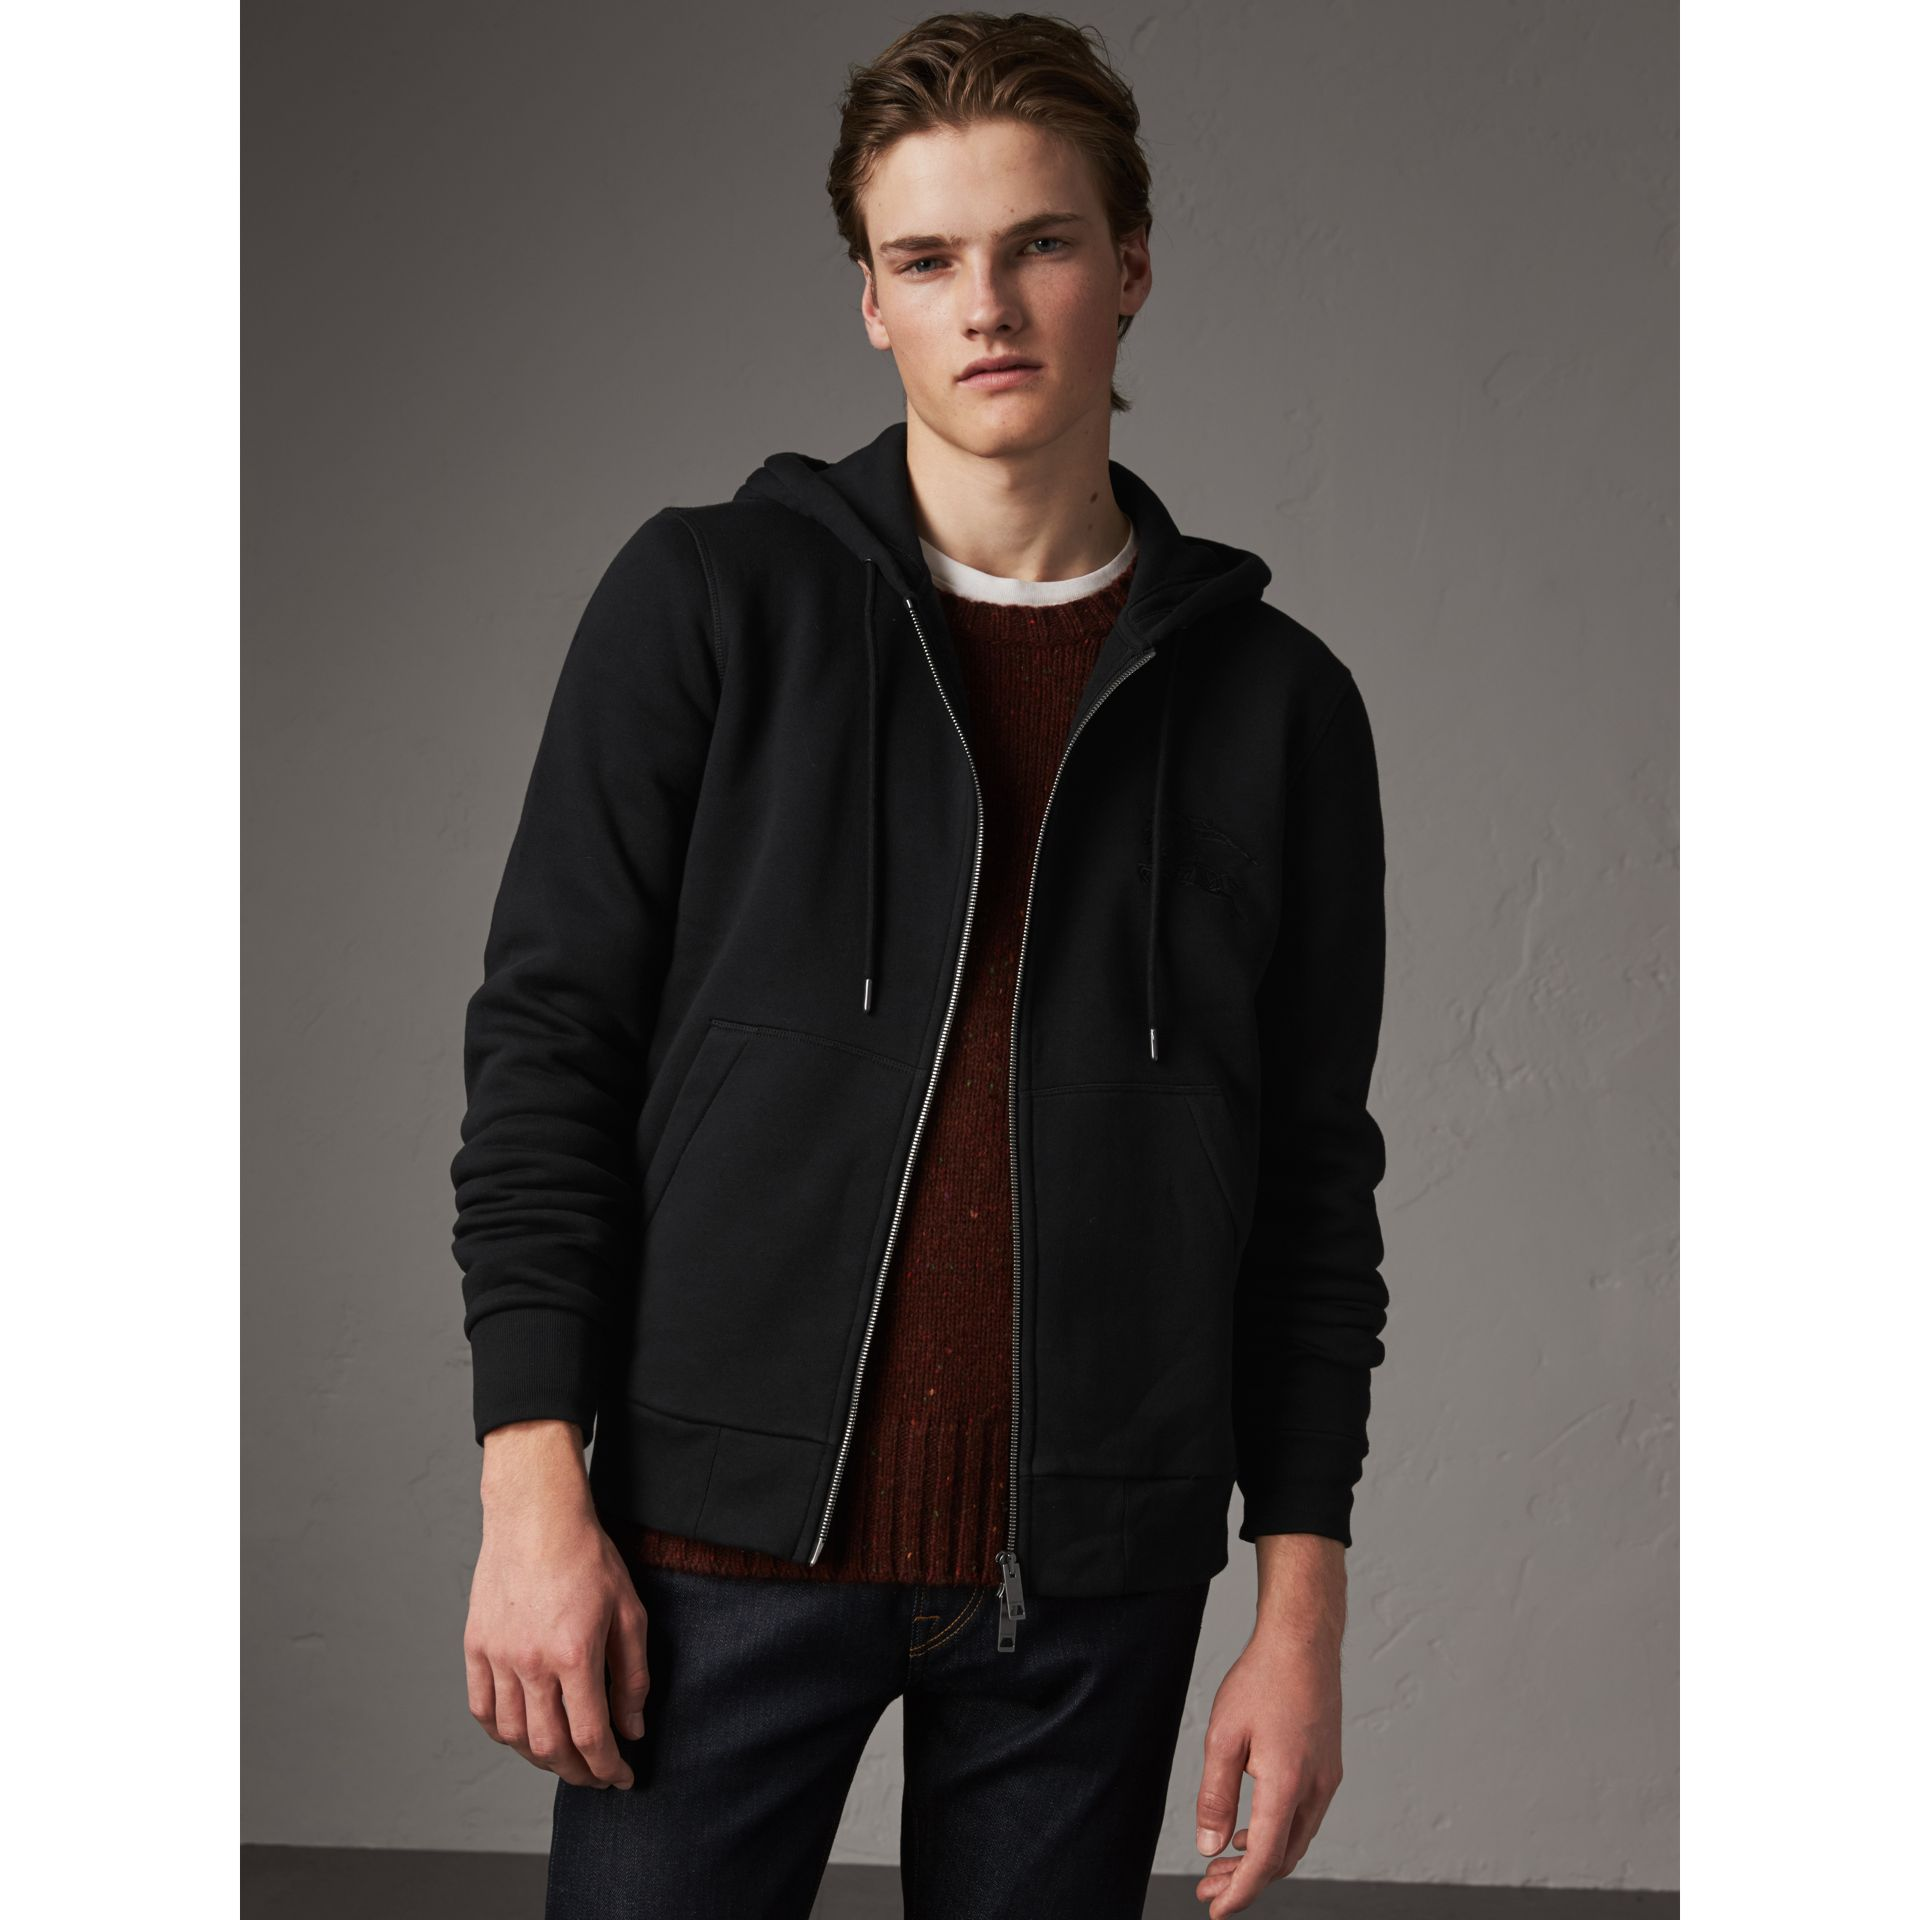 Equestrian Knight Device Jersey Hooded Zip-front Top in Black - Men | Burberry - gallery image 1